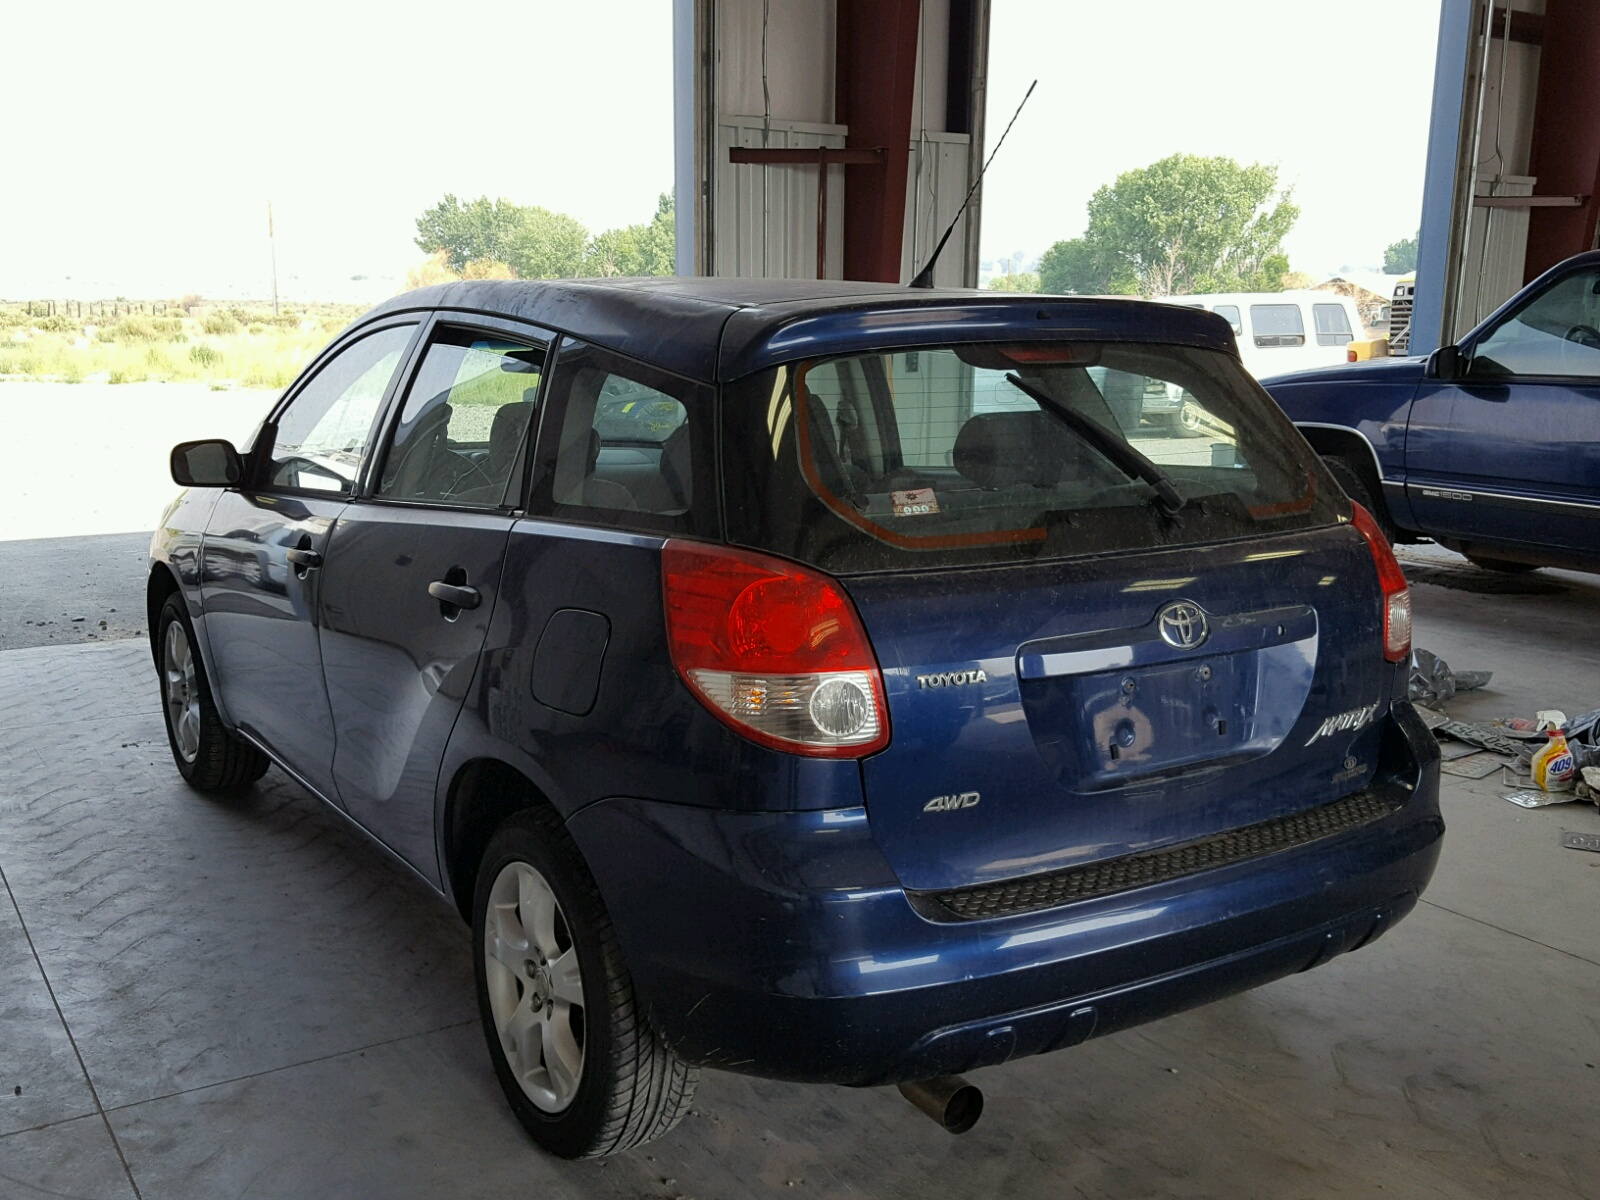 2t1lr32e53c007775 2003 Blue Toyota Corolla Ma On Sale In Co Door Lock Parts Diagram Moreover R 18l Angle View